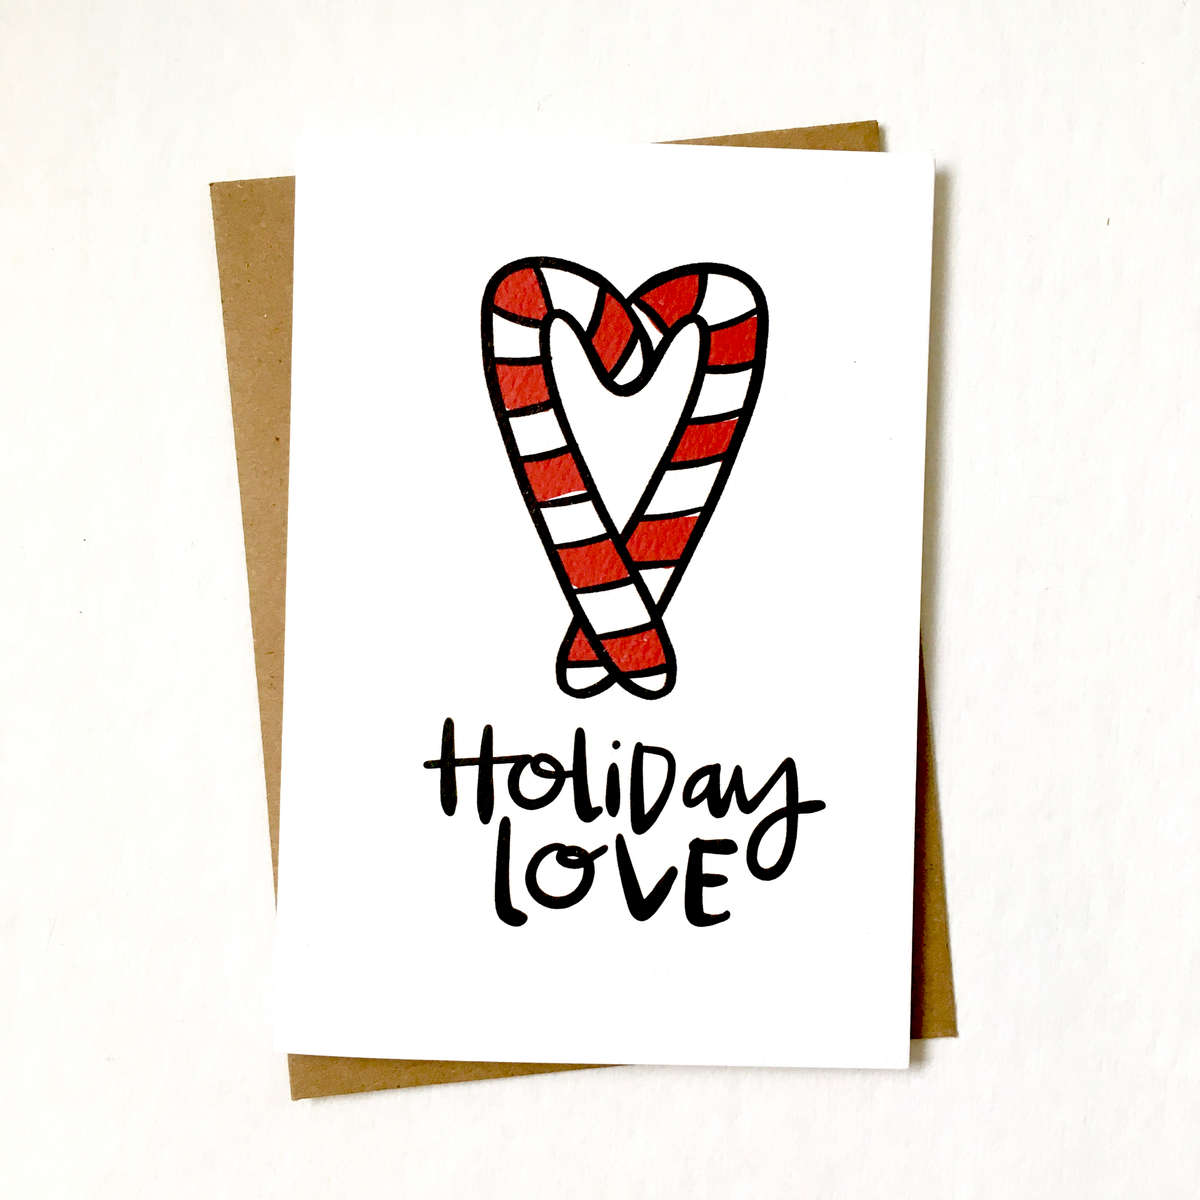 purchase herespread a little extra love around this holiday season // warm the hearts of those who makes your life a little bit sweeter with this new candy cane holiday card // snag yours now while they're still in stock!each card is:printed on 100# recycled + responsibly-sourced paper //measuring 3.5{quote} x 5{quote} //accompanied by a recycled kraft paper 4-bar envelope //professionally printed on a digital press //individually packaged in sealed cellophane sleeve //made with mad love in colorado, usa.